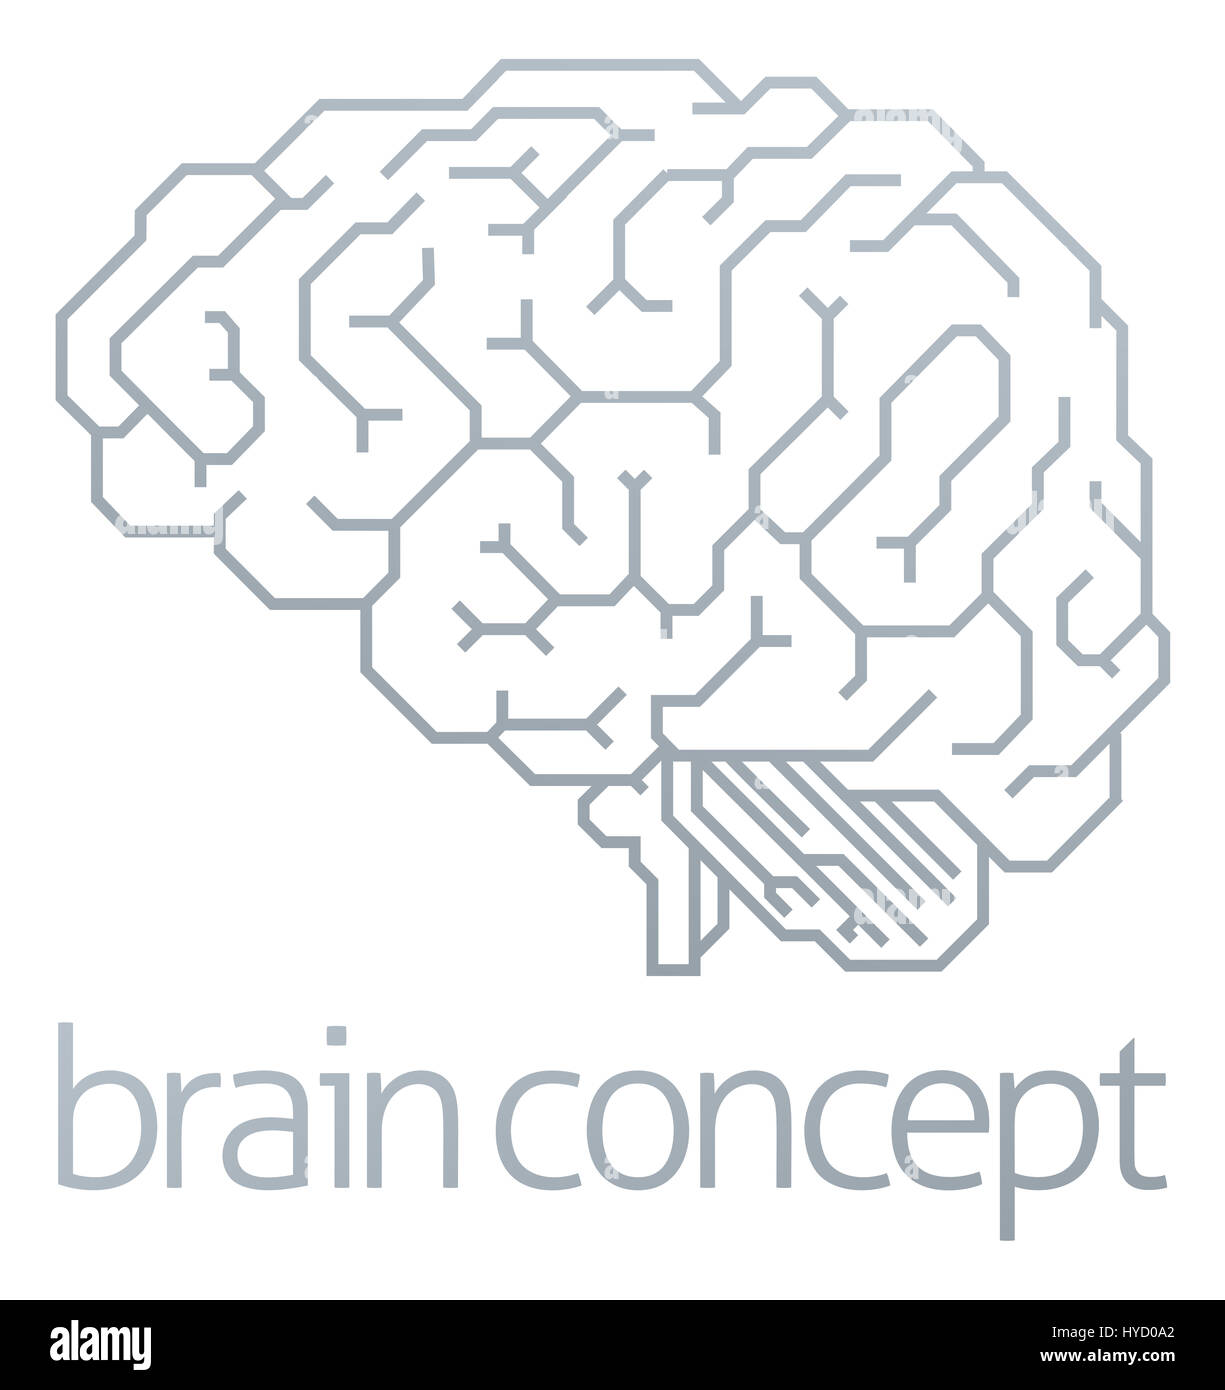 Human brain side diagram stock photos human brain side diagram a conceptual illustration of a stylised brain from the side stock image ccuart Images